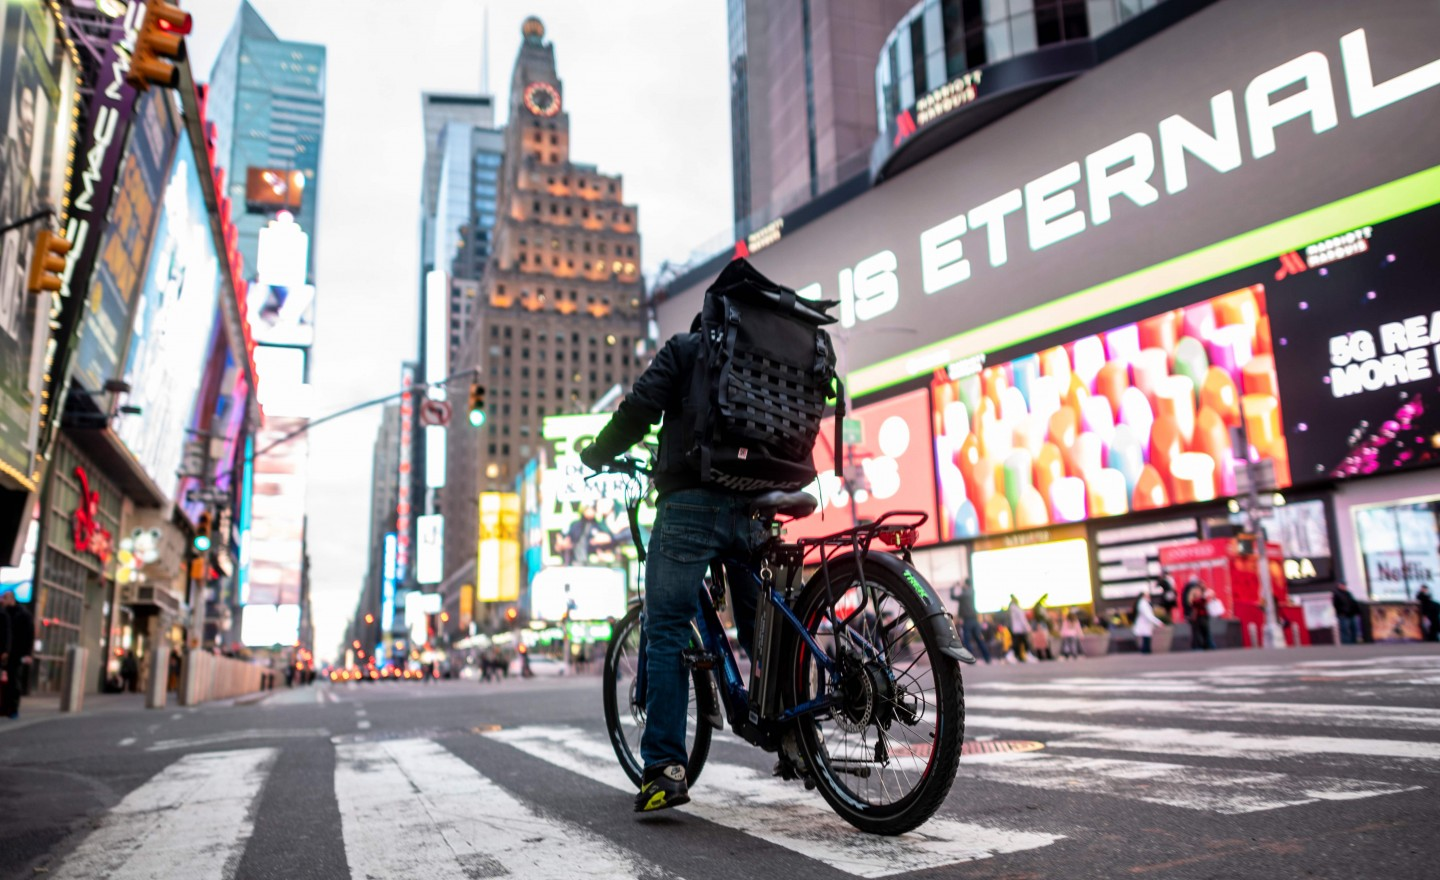 A food delivery man crosses the street in Times Square in Manhattan on 17 March 2020 in New York City. The coronavirus outbreak has transformed the US virtually overnight from a place of boundless consumerism to one suddenly constrained by nesting and social distancing. (Johannes Eisele/AFP)